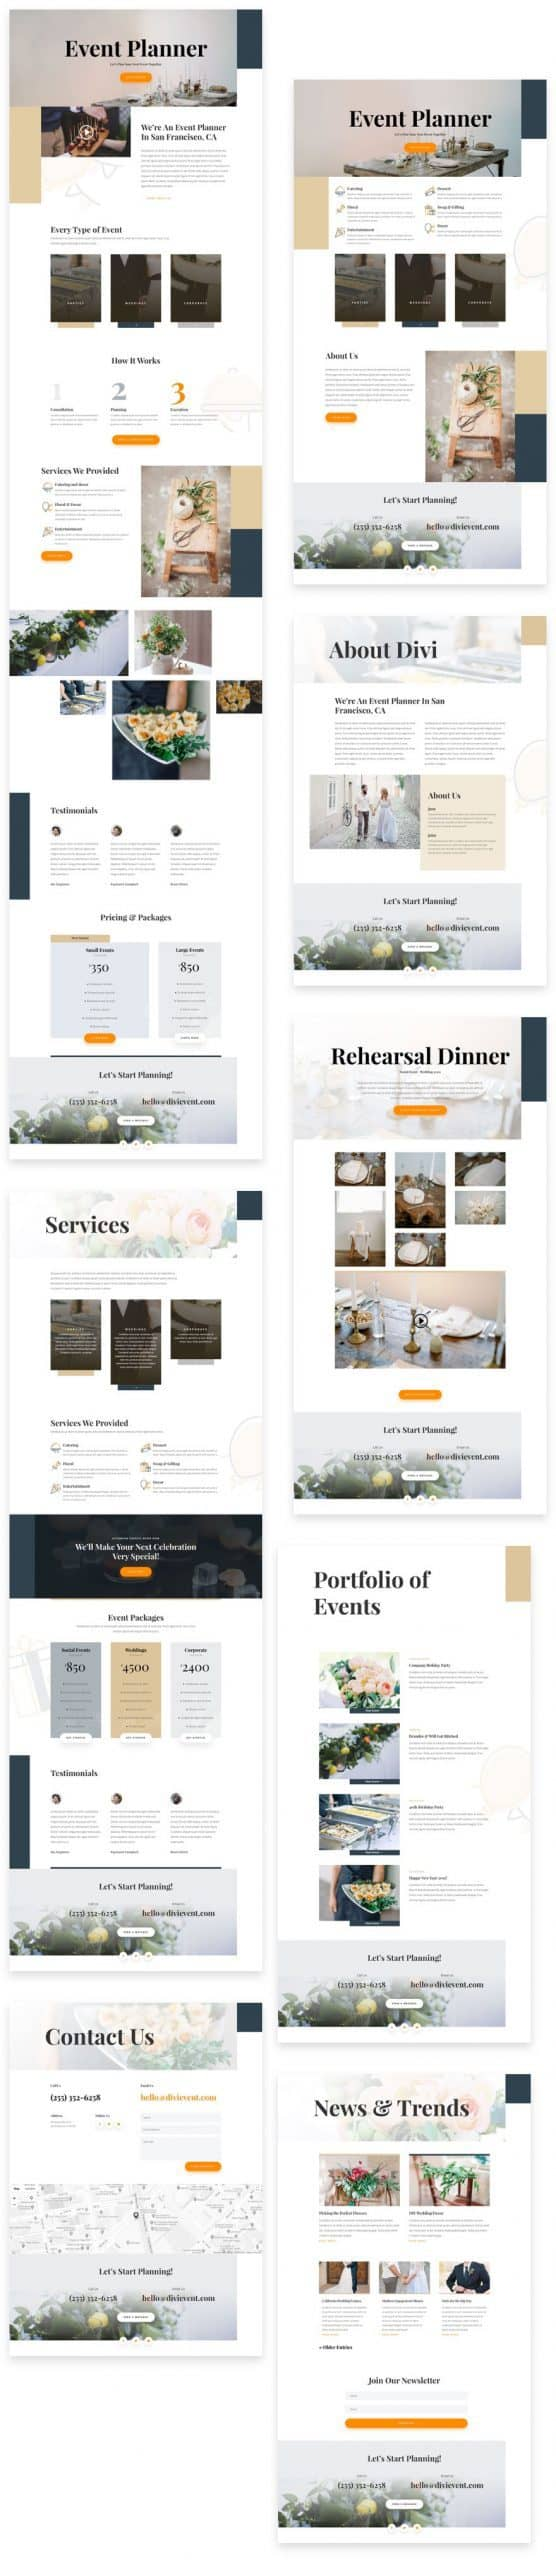 Event Planner Divi Layout Pack